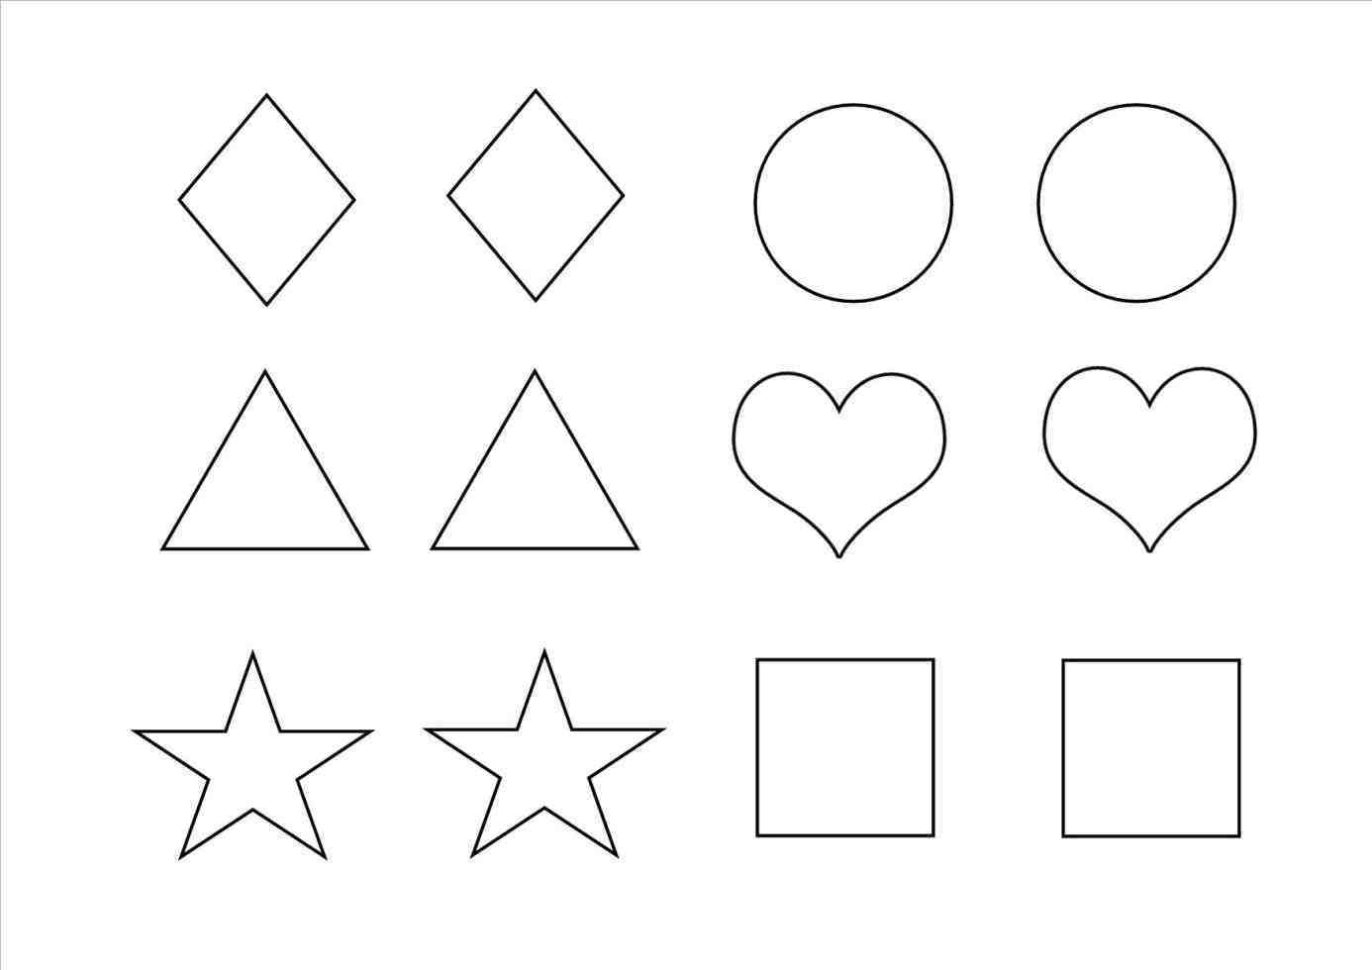 Direct Shapes Templates To Cut Out Free Printable Crammed Of Winter - Free Shape Templates Printable